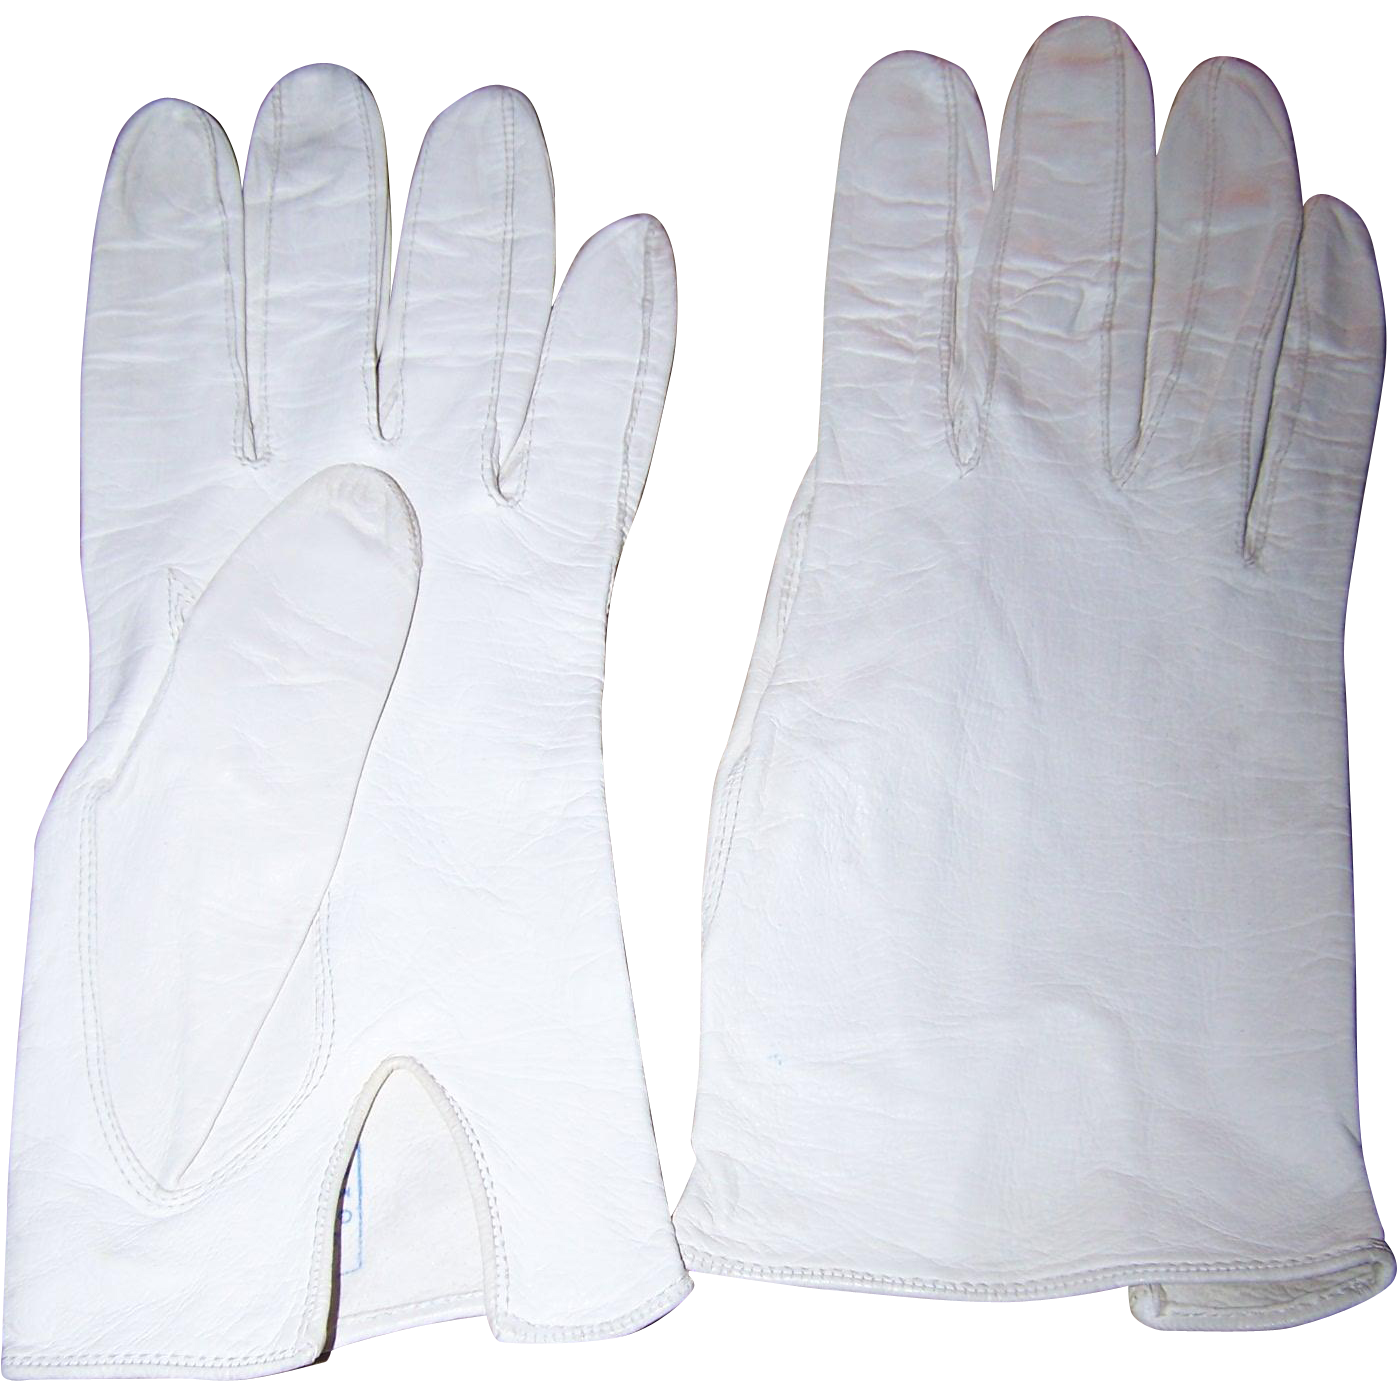 Ladies leather gloves designer - Designer Guibert Freres Off White Ladies Kid Leather Gloves Size 7 Model Edeltan